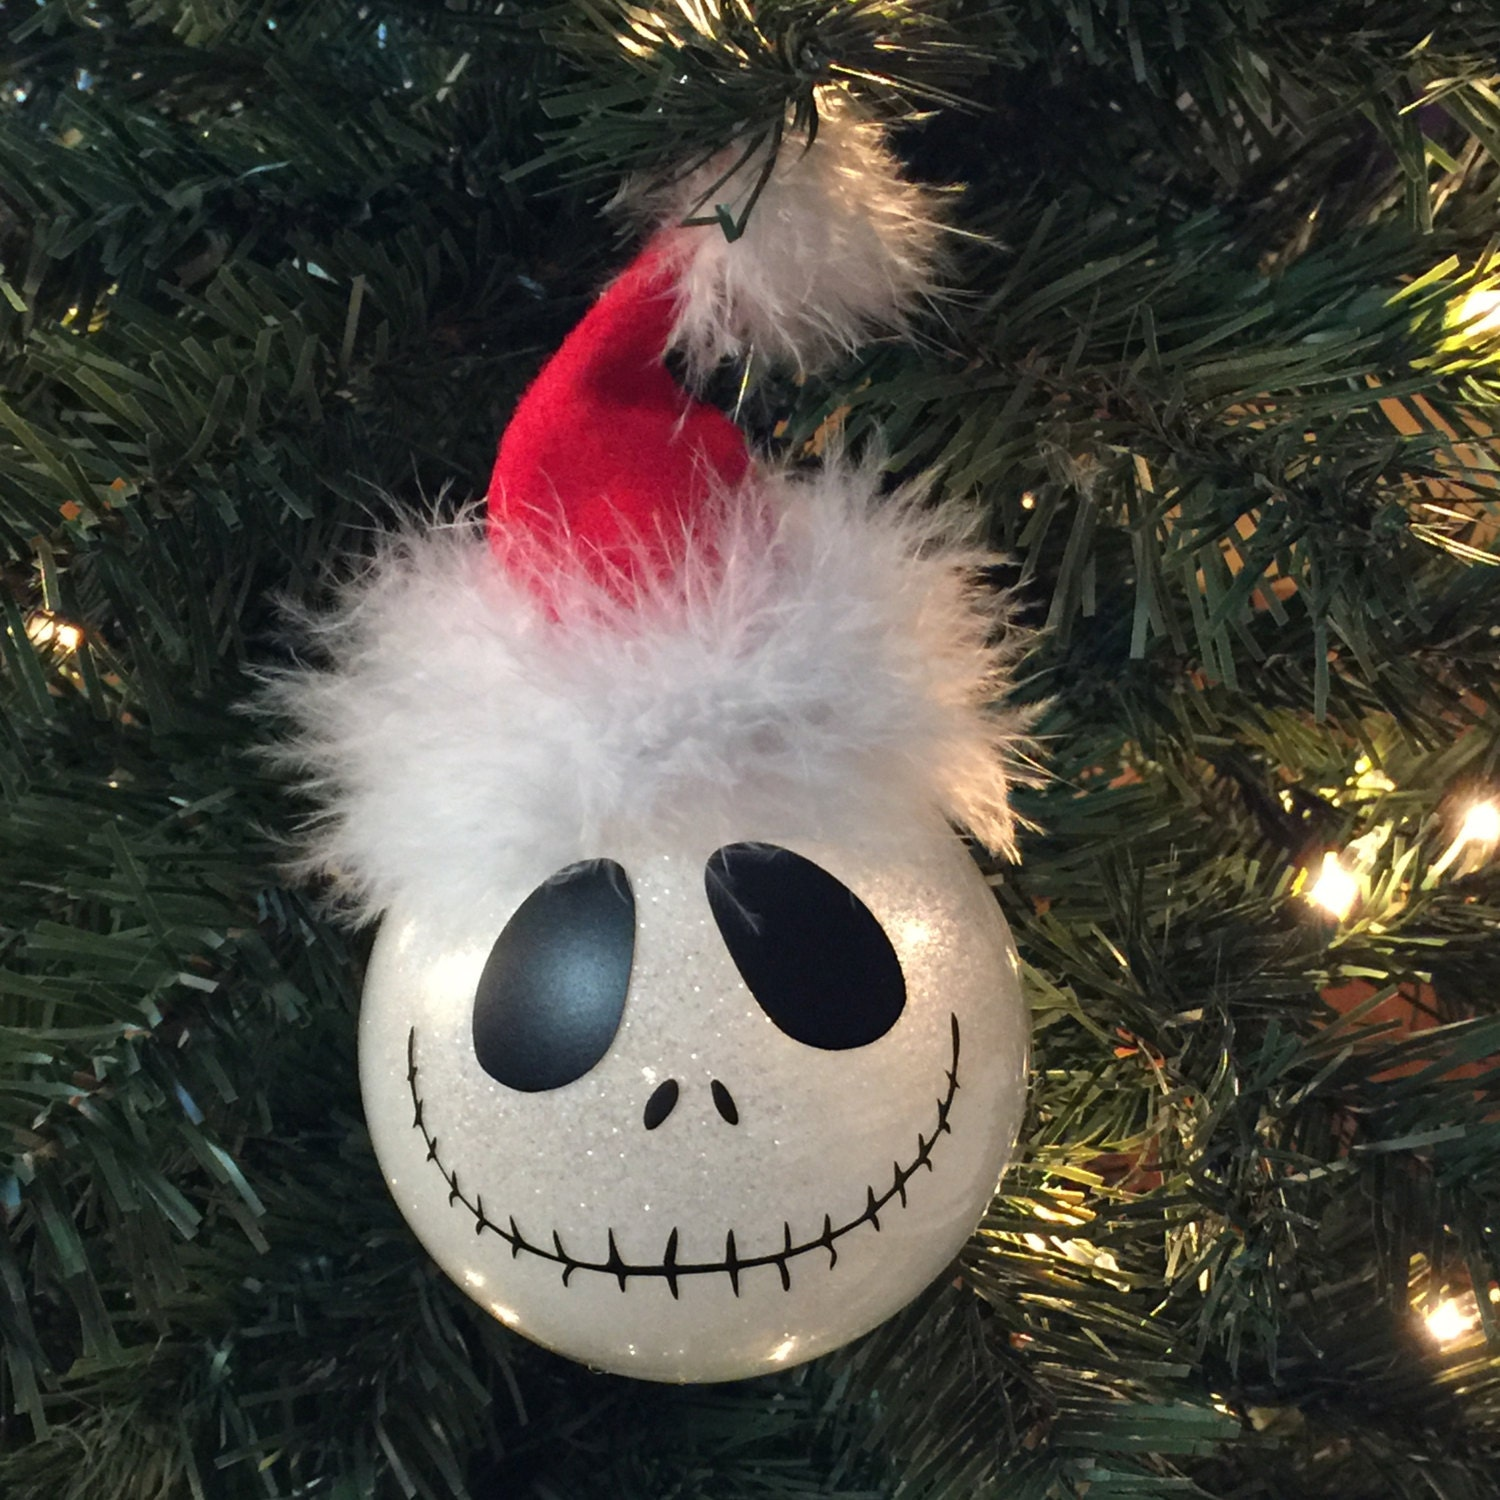 Nightmare Before Christmas Christbaumkugeln.How The Nightmare Before Christmas Helped Take Halloween Quotes Of